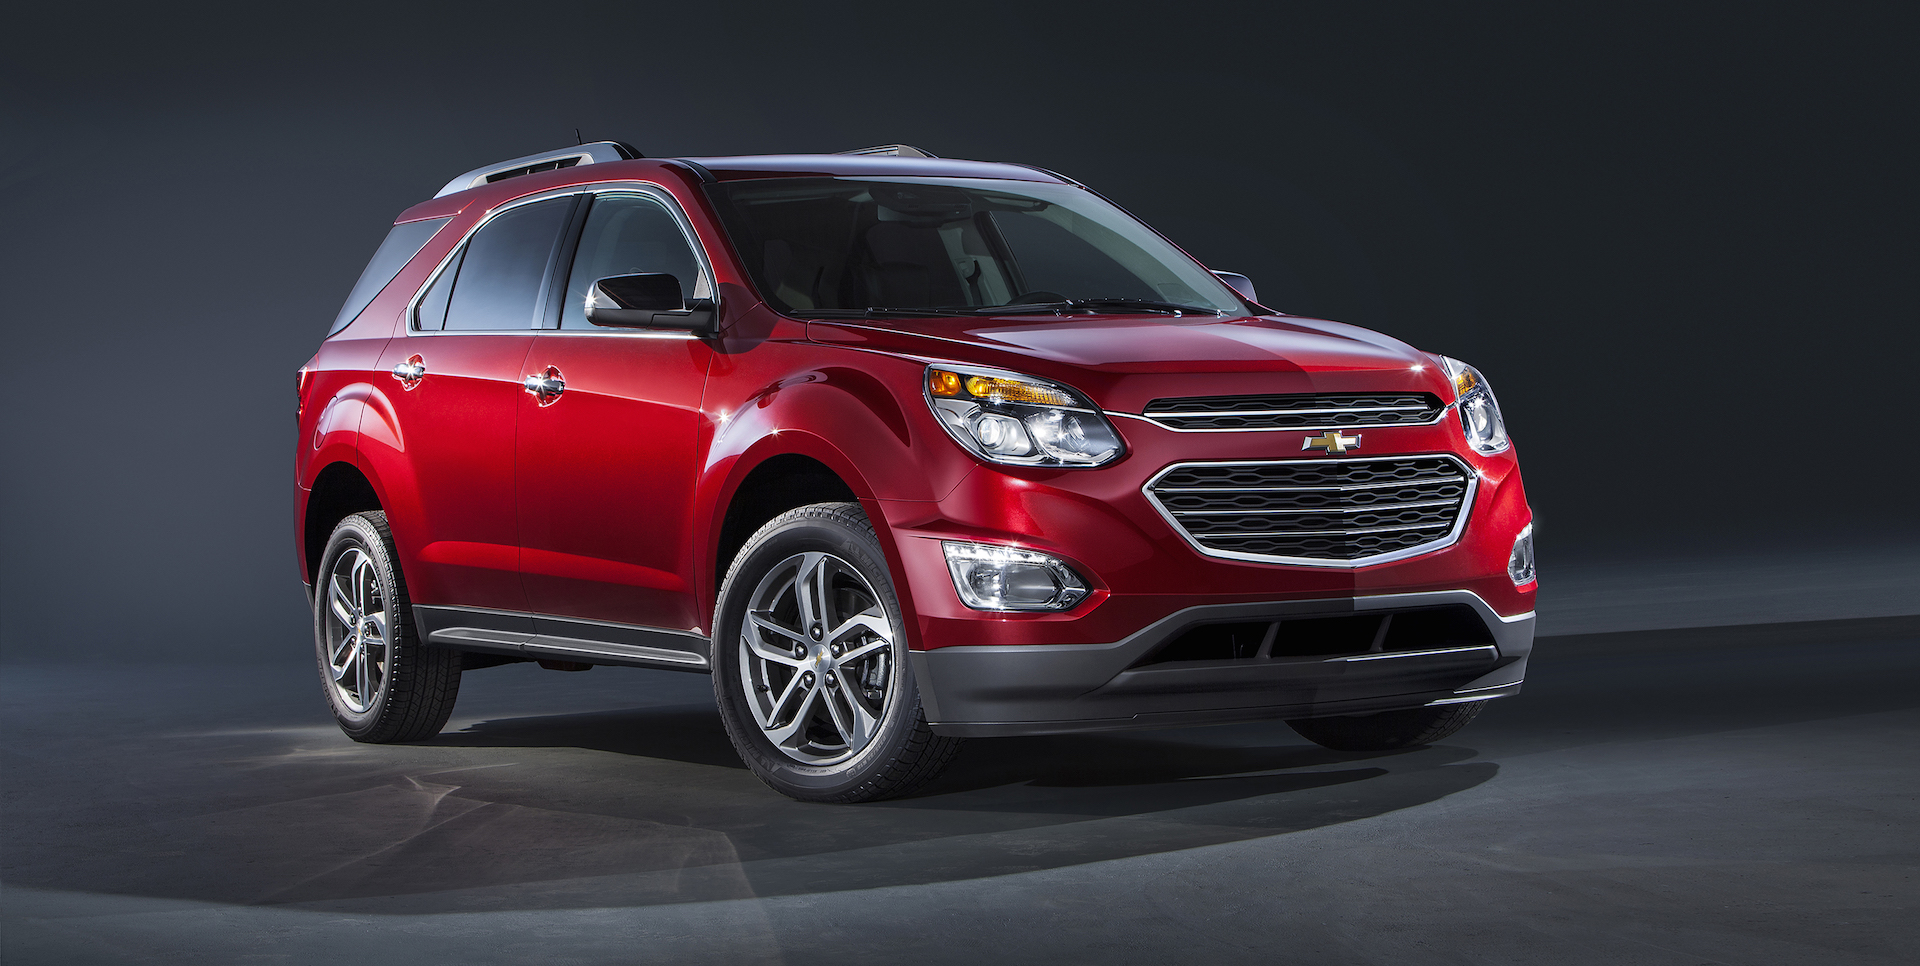 hight resolution of compare the chevrolet equinox to the dodge journey